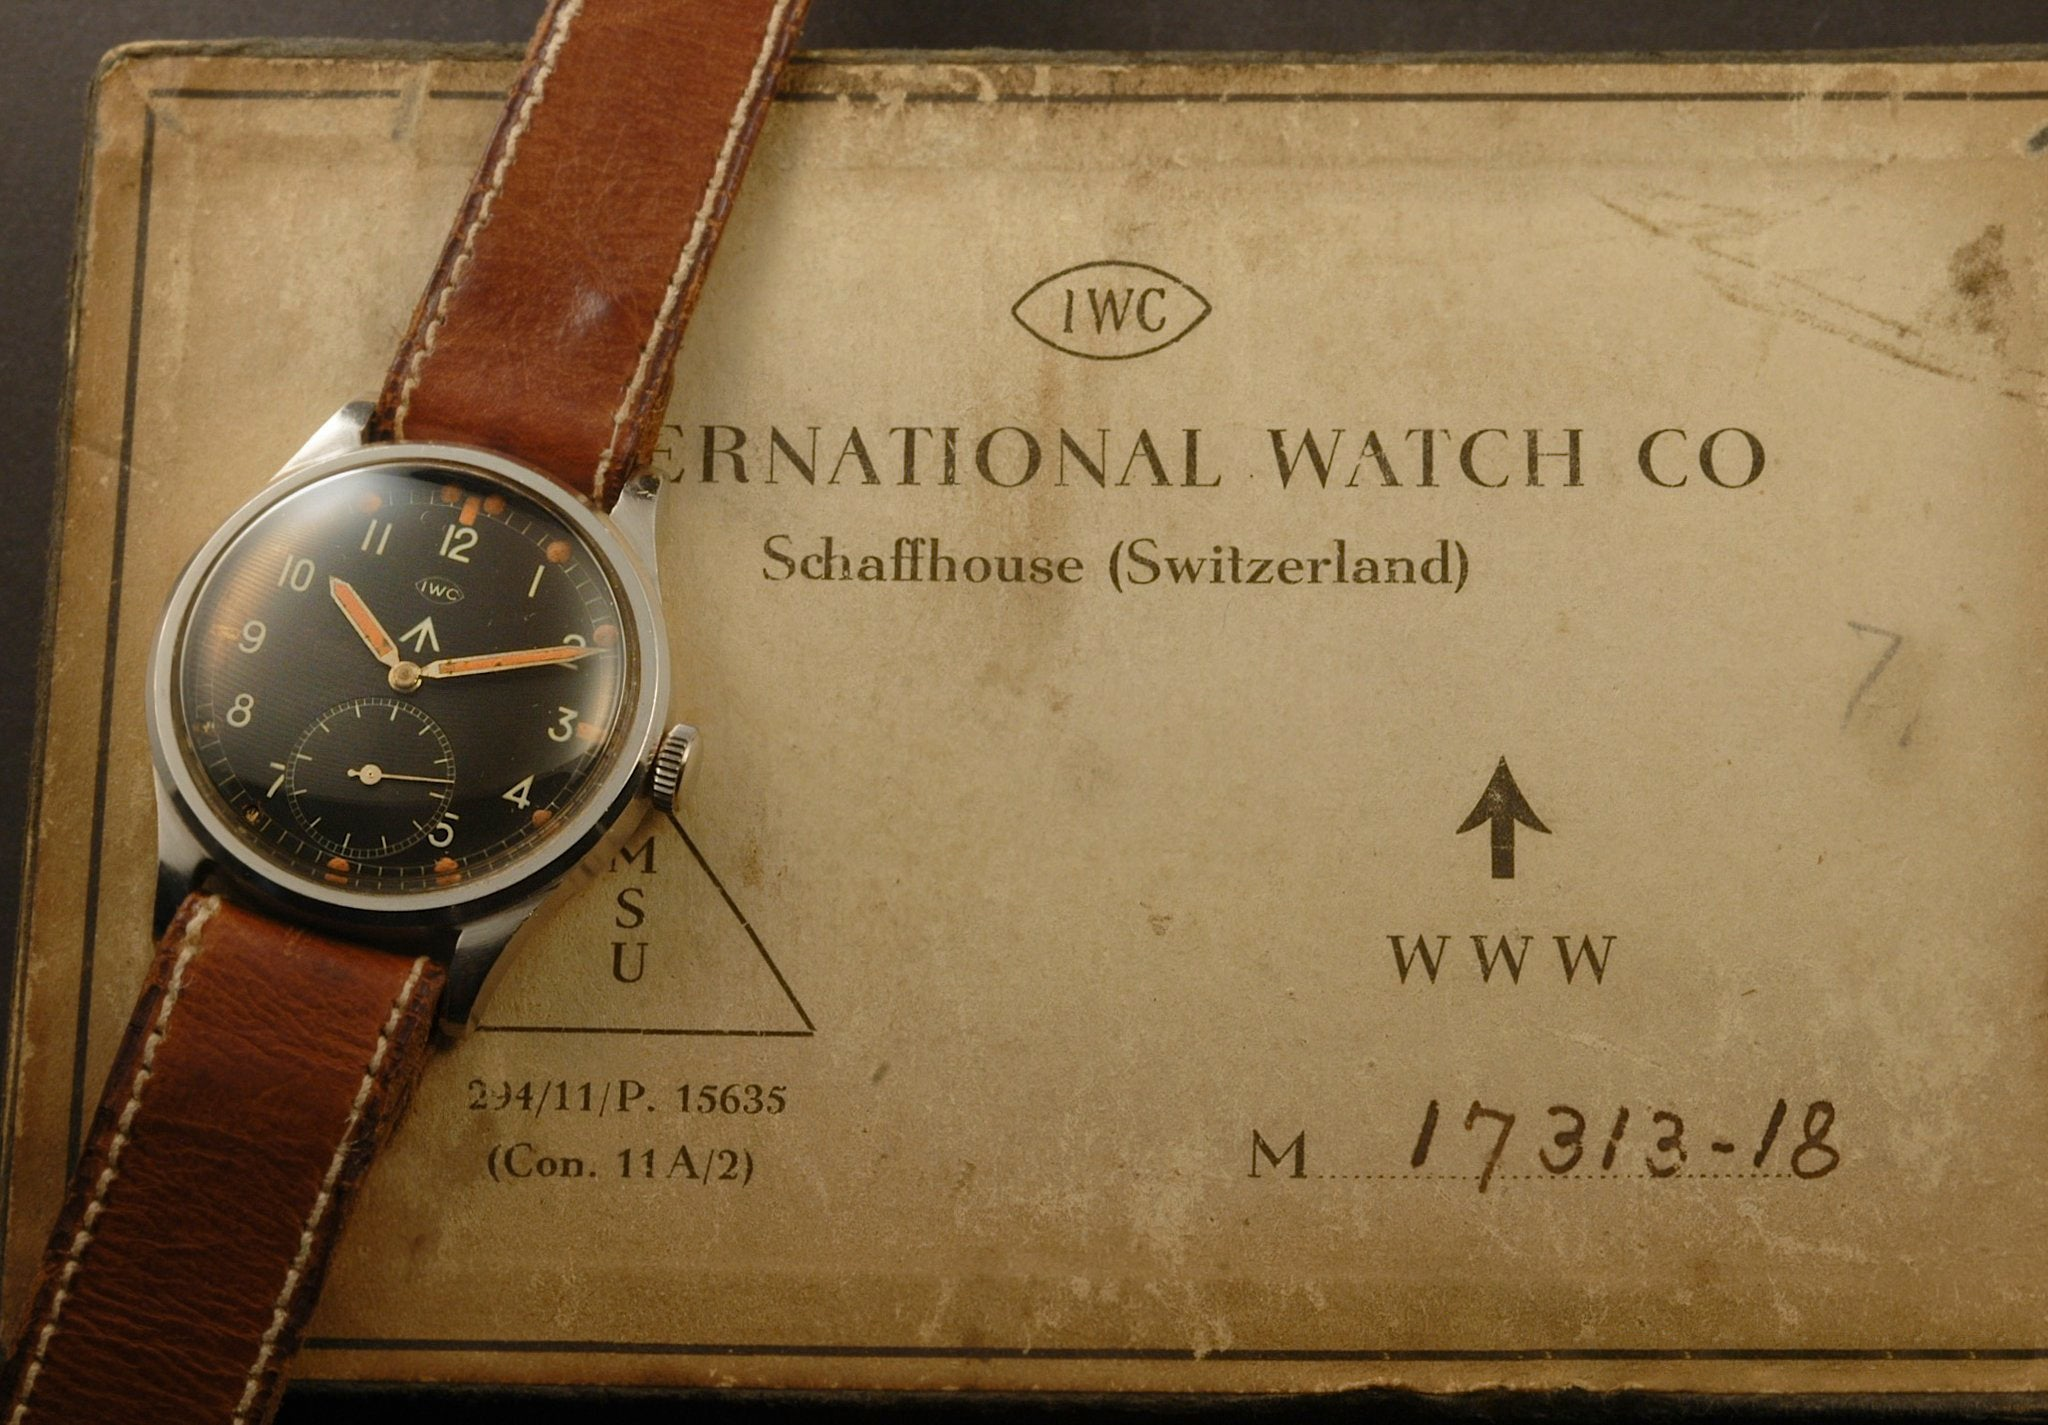 W.W.W. British Dirty Dozen IWC  military watch with original box at A Collected Man London online vintage military watch specialist